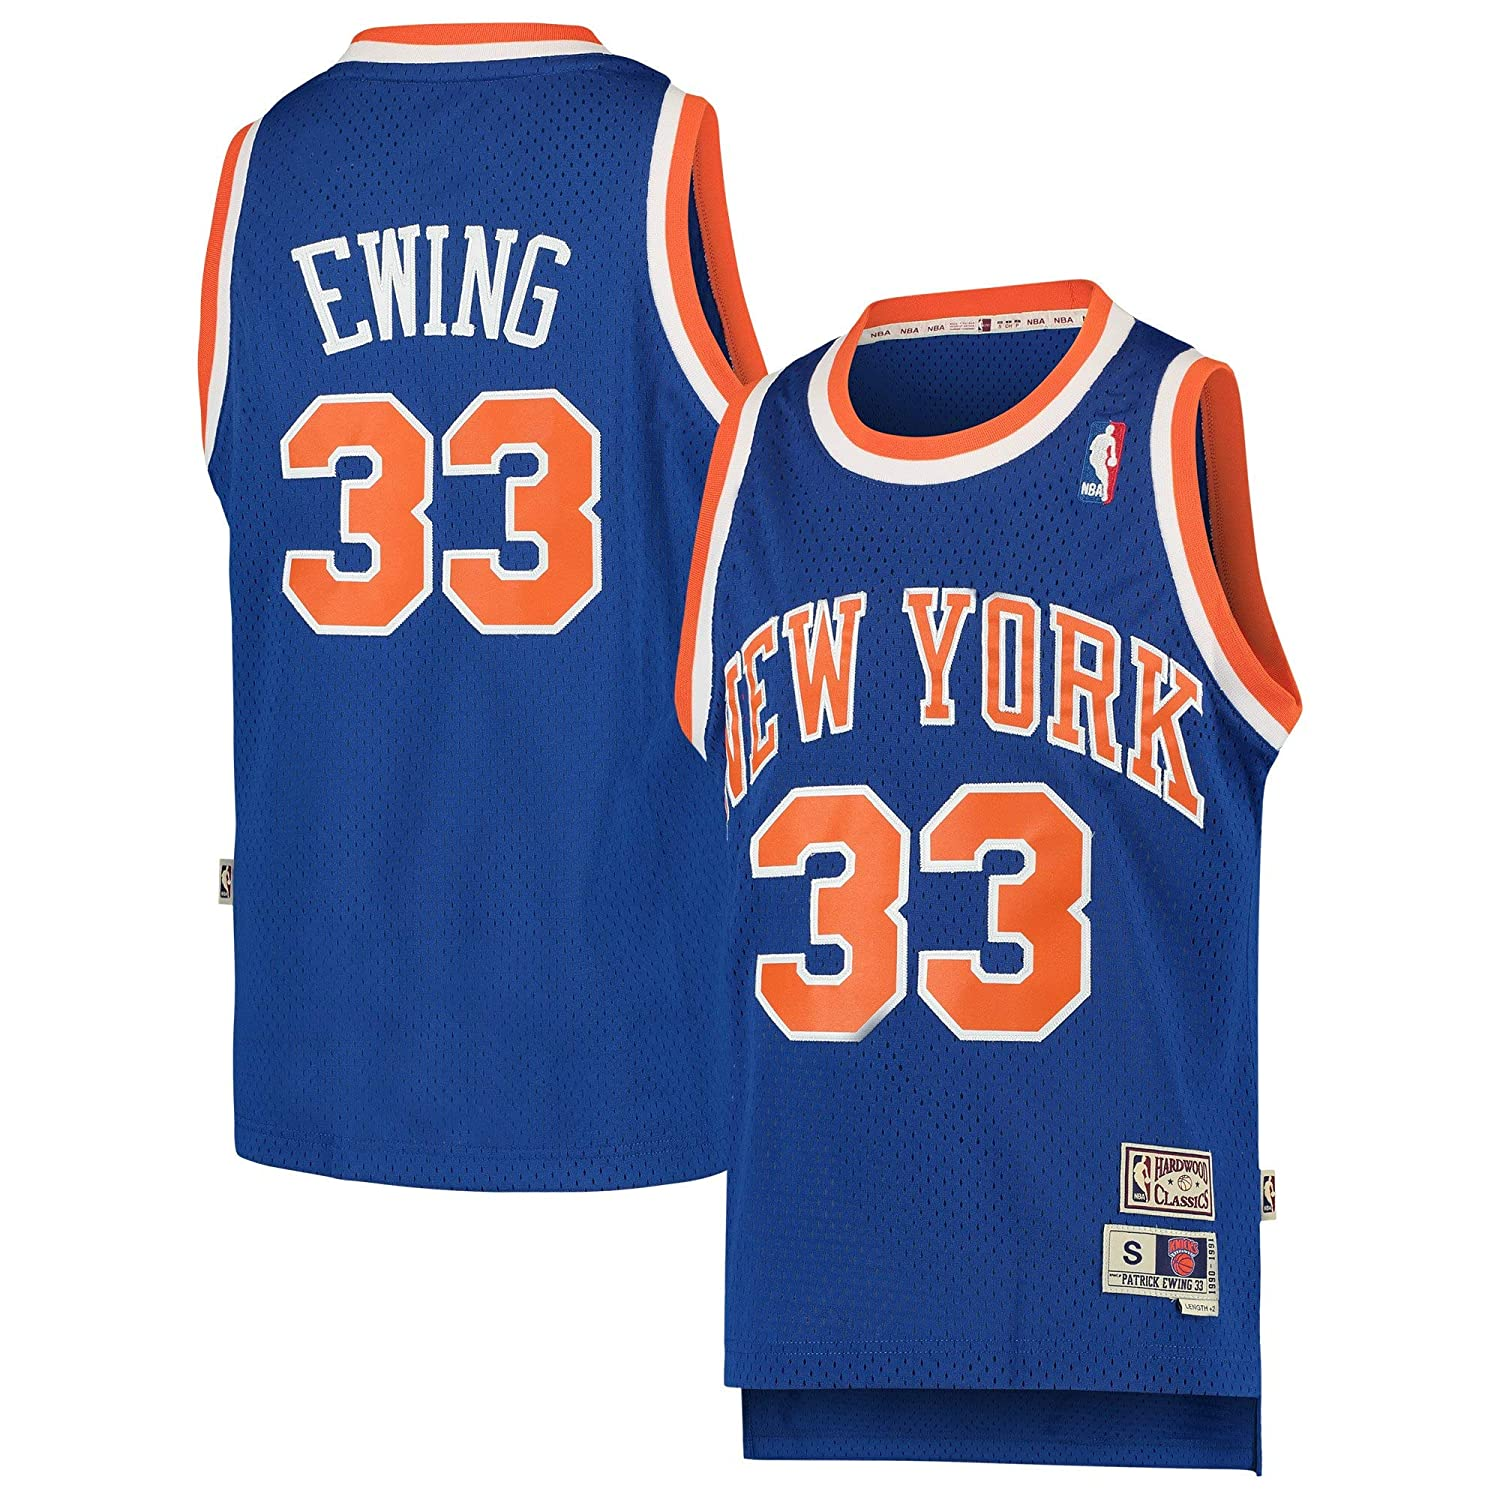 newest e2fd1 6615b Amazon.com: Patrick Ewing New York Knicks #33 Blue Youth ...